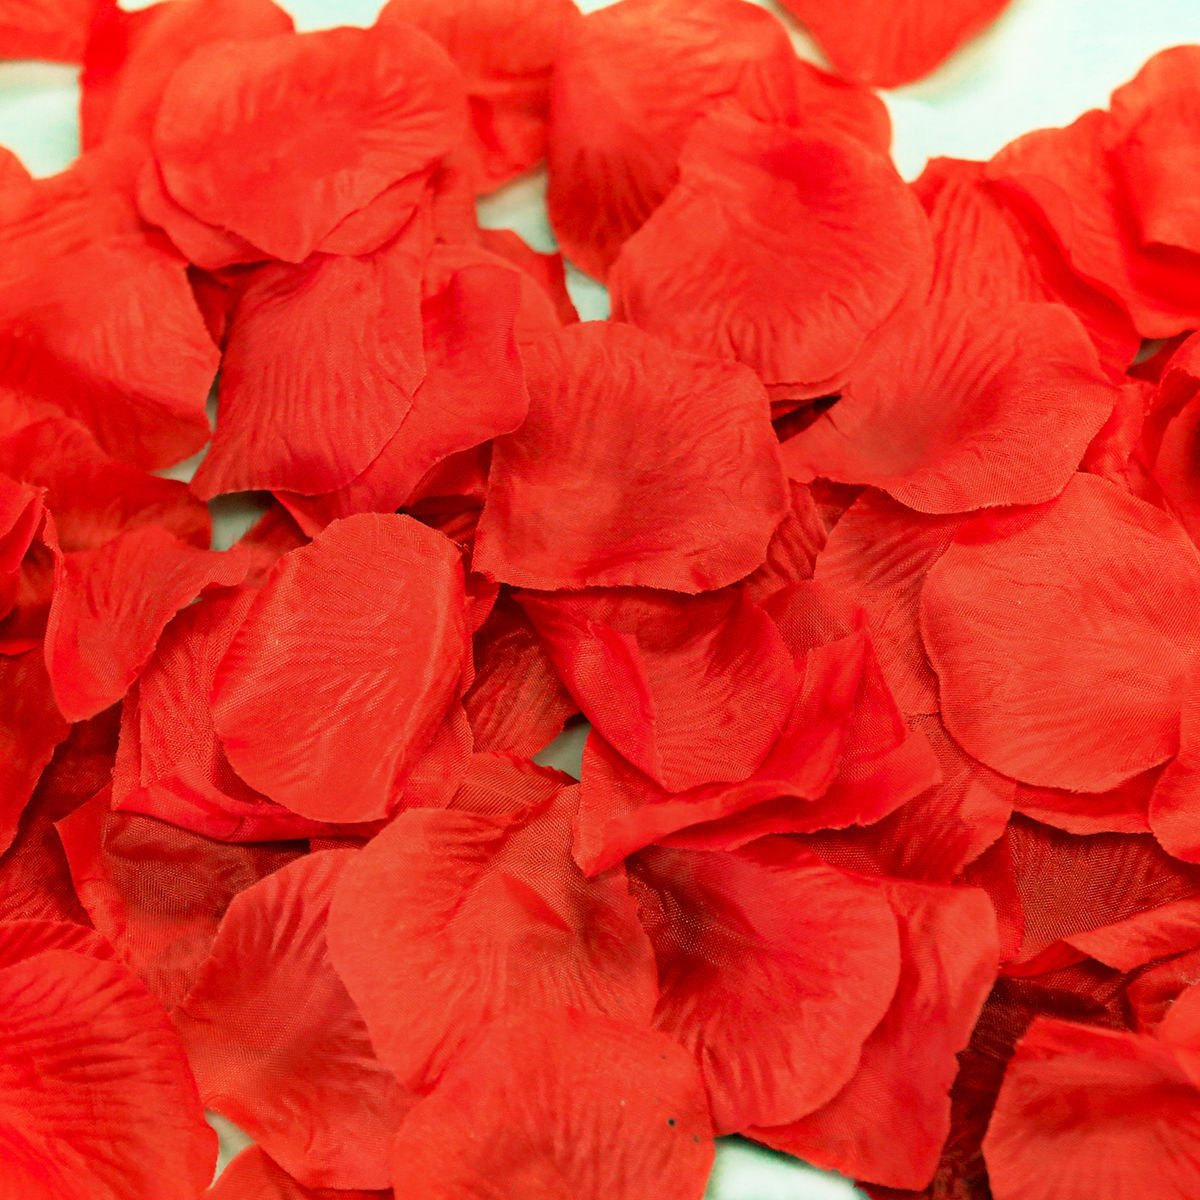 Magik 1000~5000 Pcs Silk Flower Rose Petals Wedding Party Pasty Tabel Decorations, Various Choices (4000, Red)